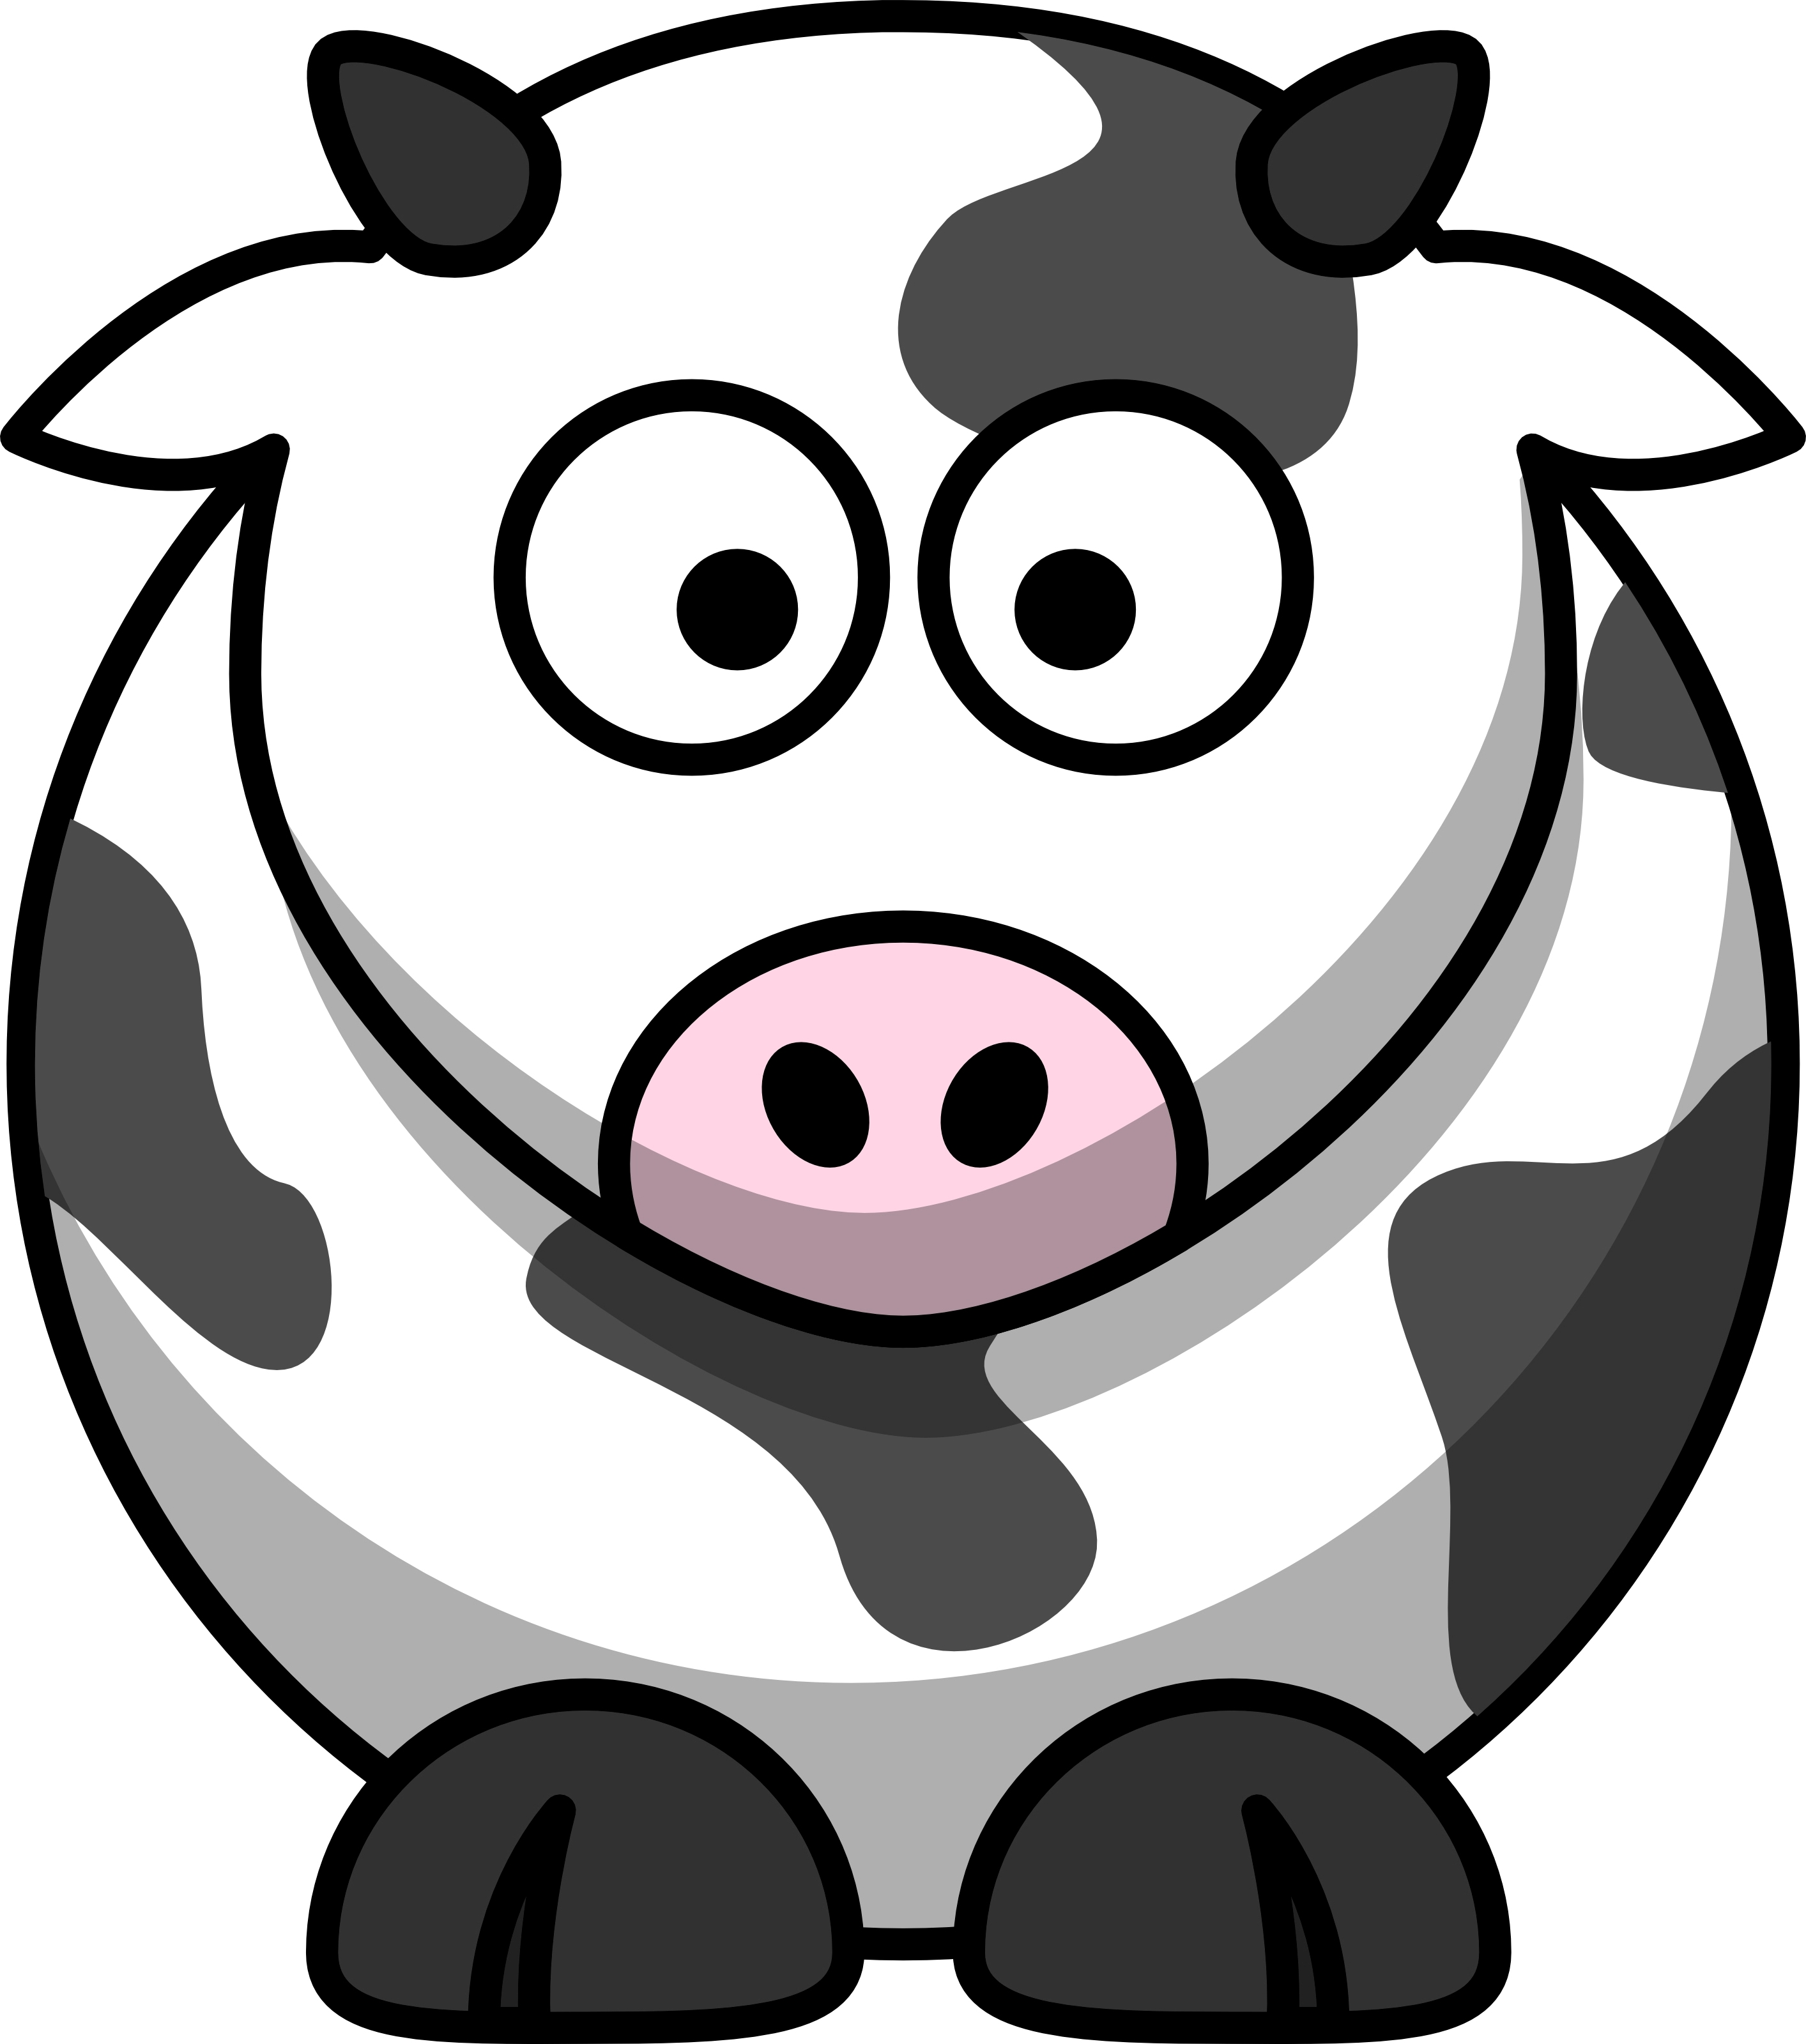 Clipart - Pig, Cow-Clipart - Pig, Cow-7